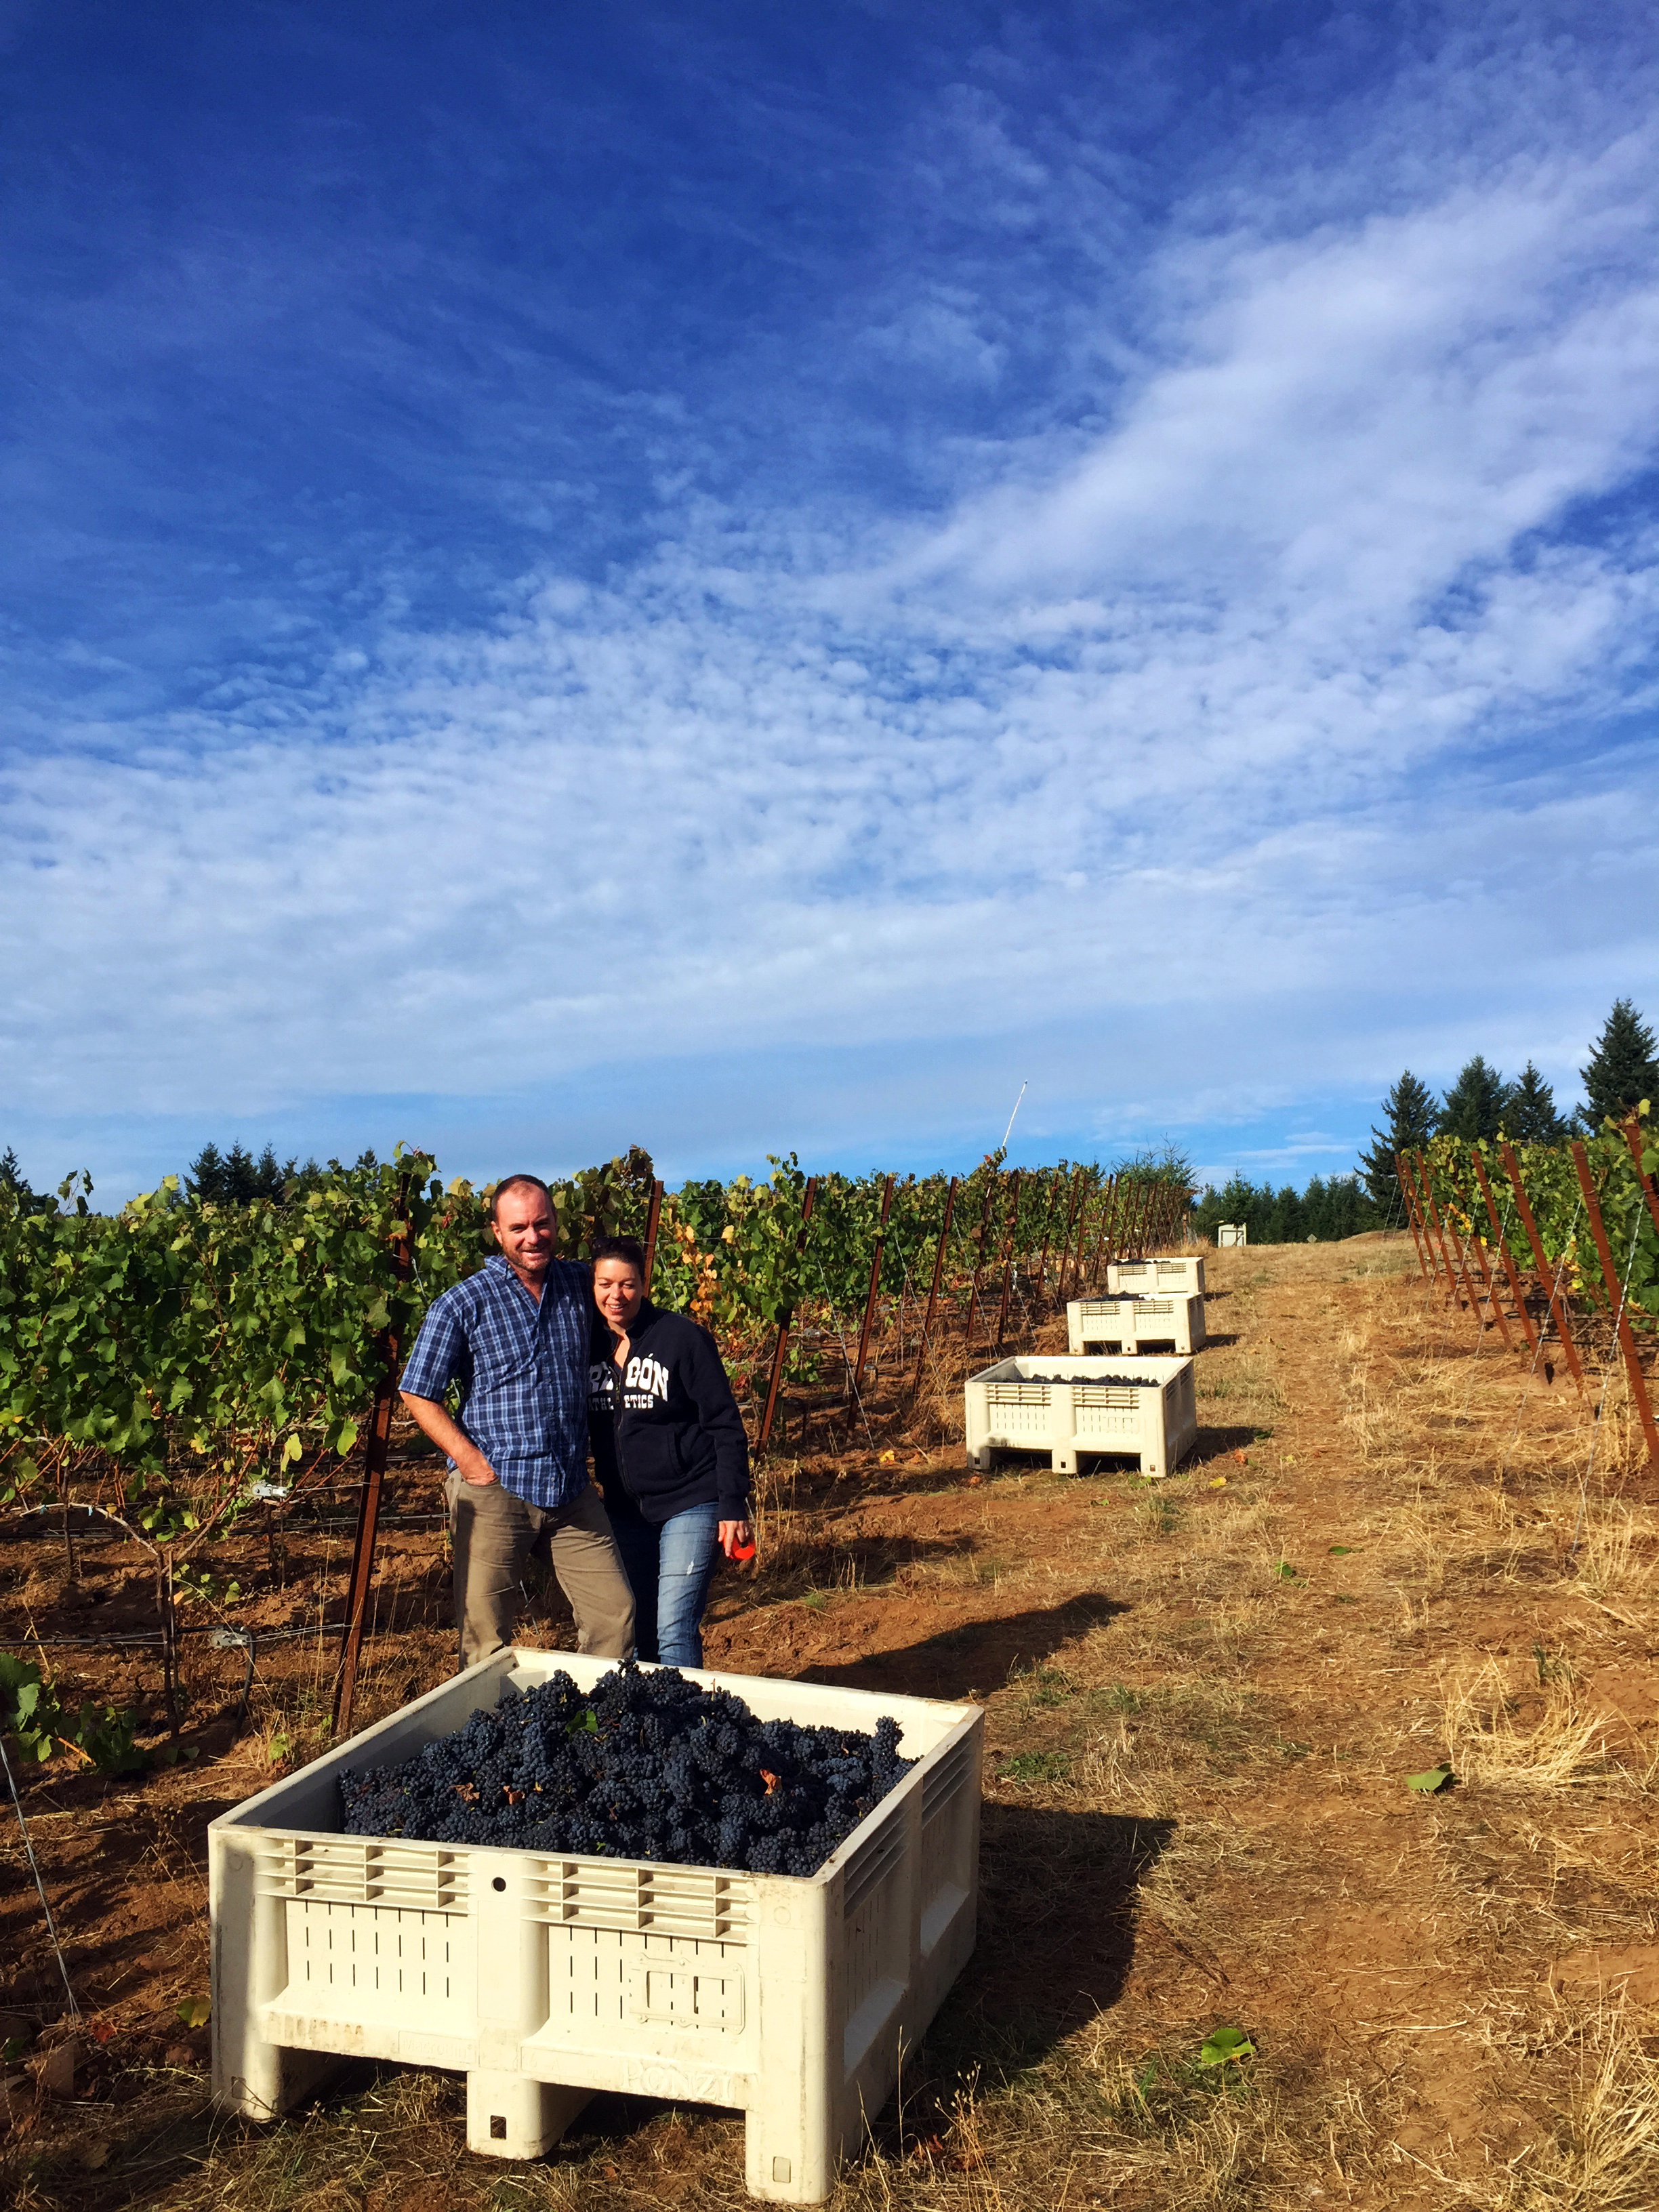 Luisa & Eric at their vineyard